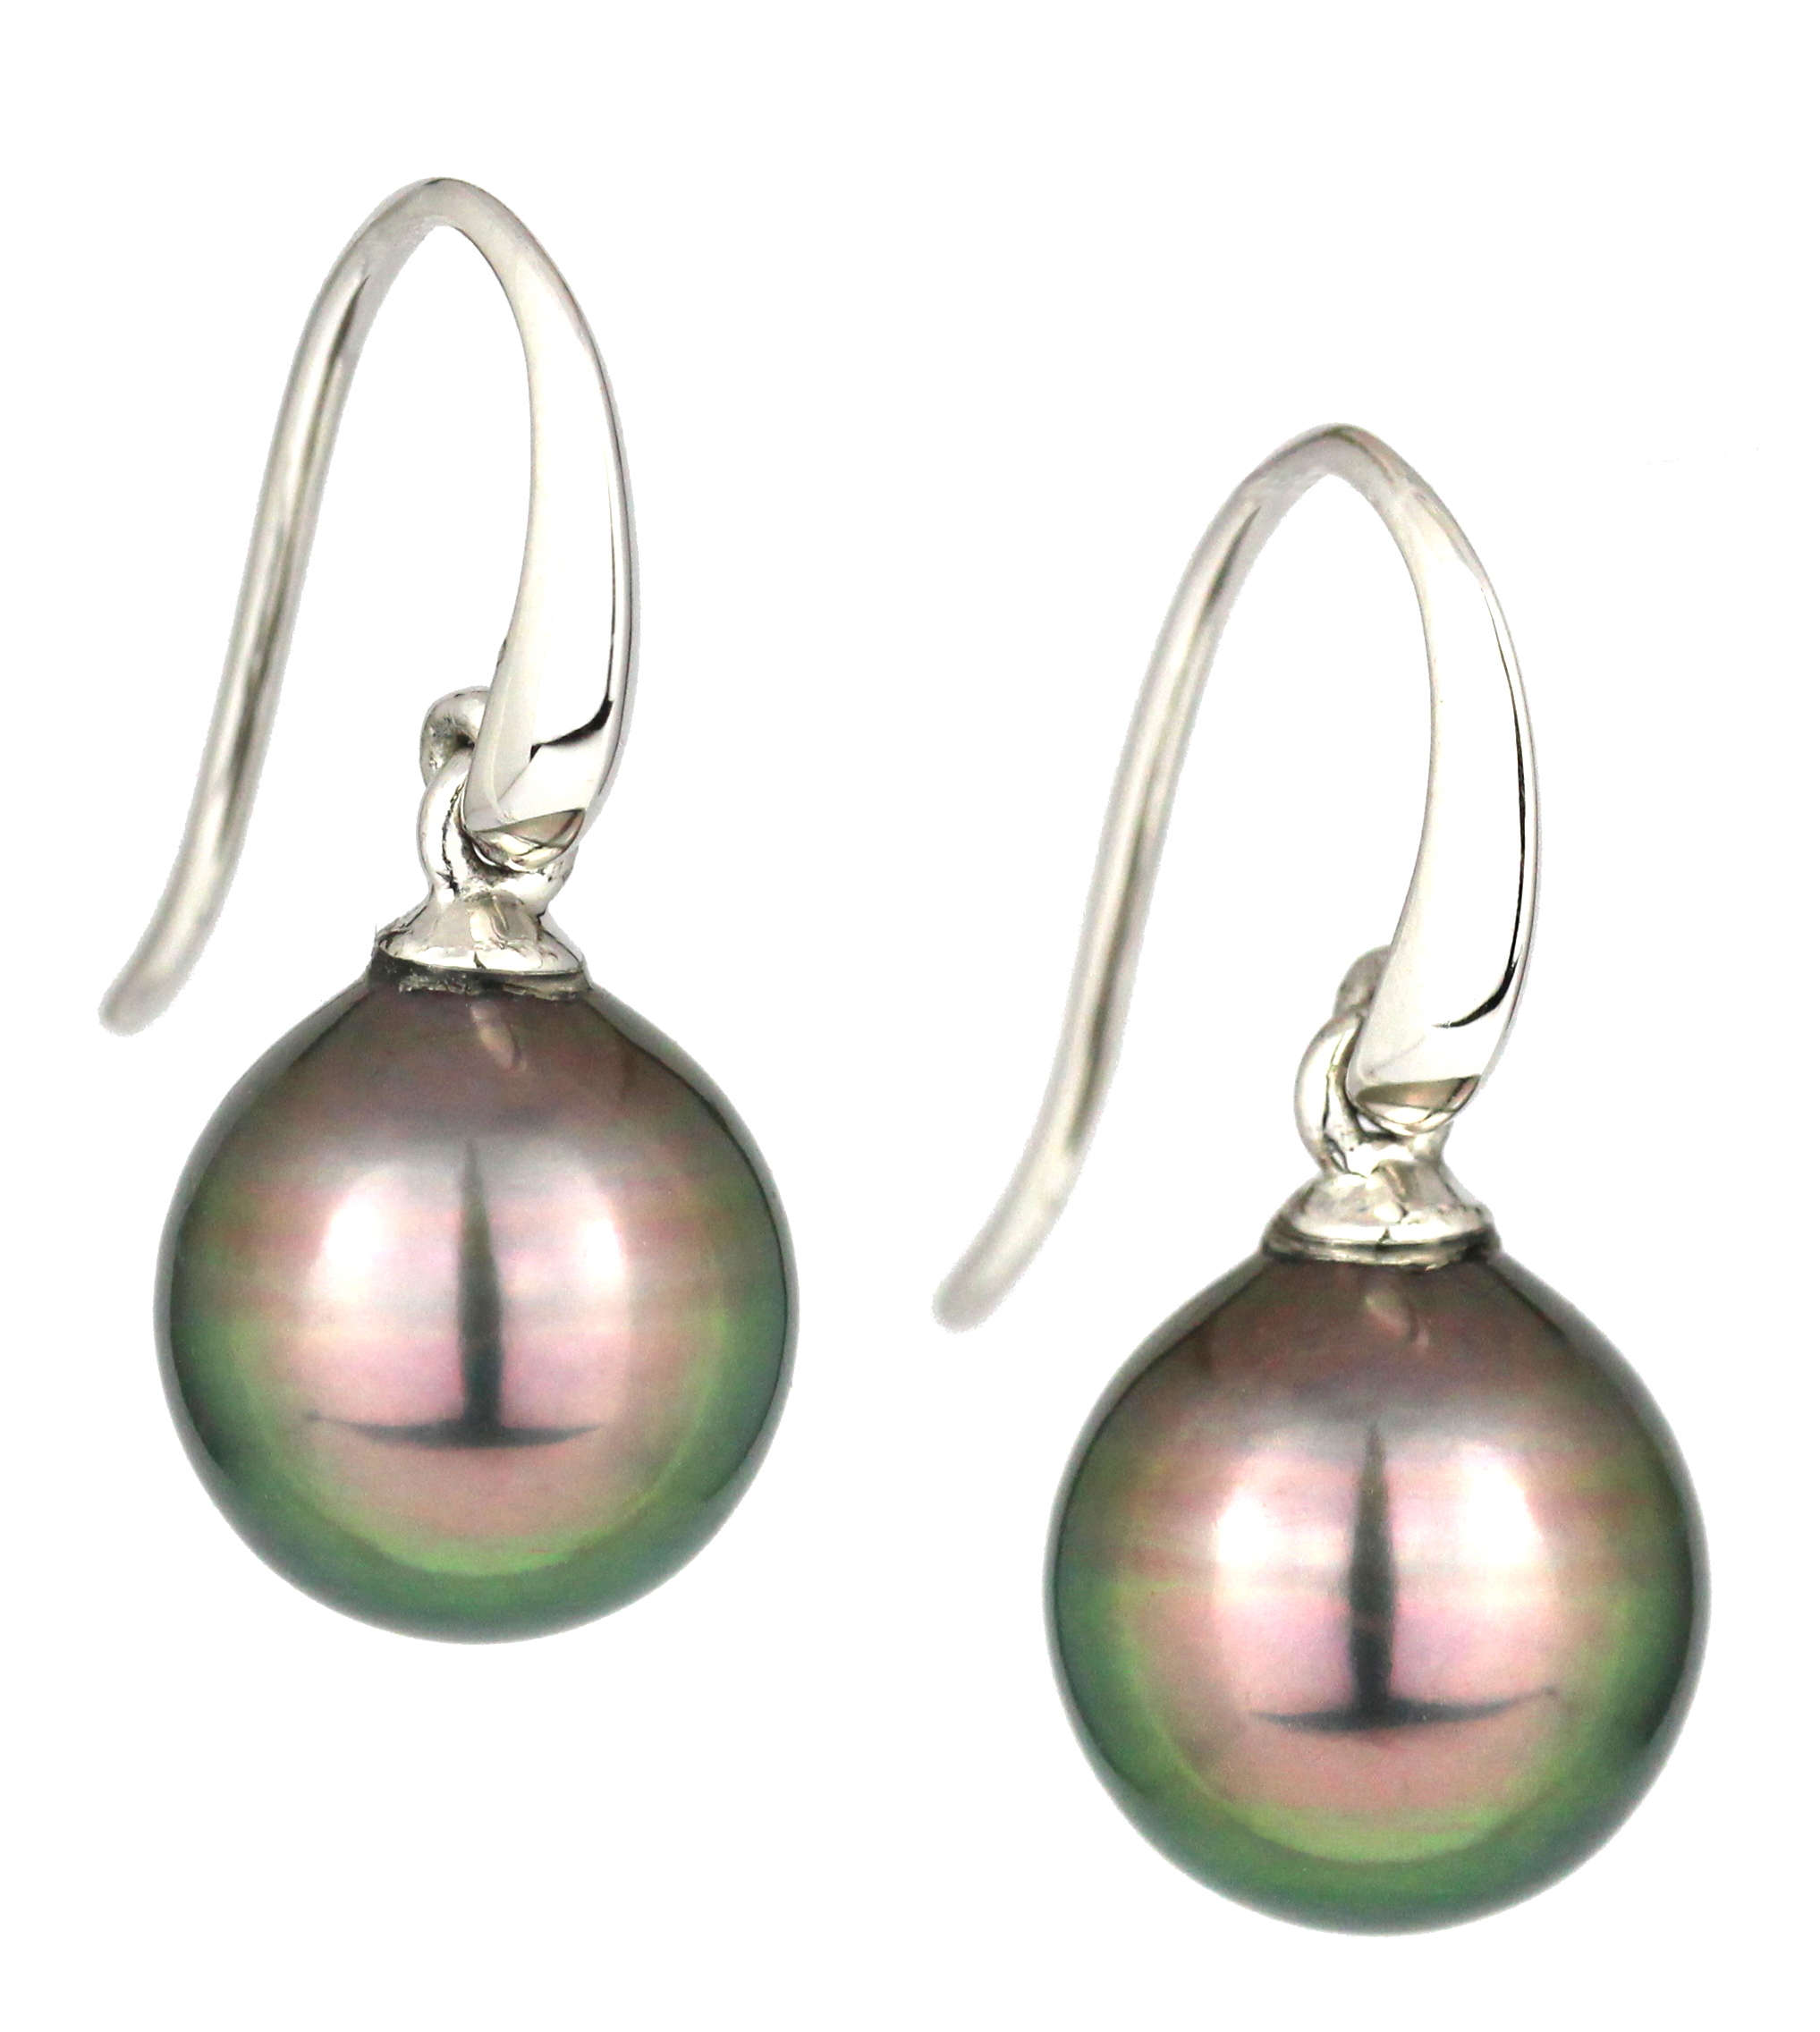 Grey tahitian pearl shepherd hook earrings in white gold.